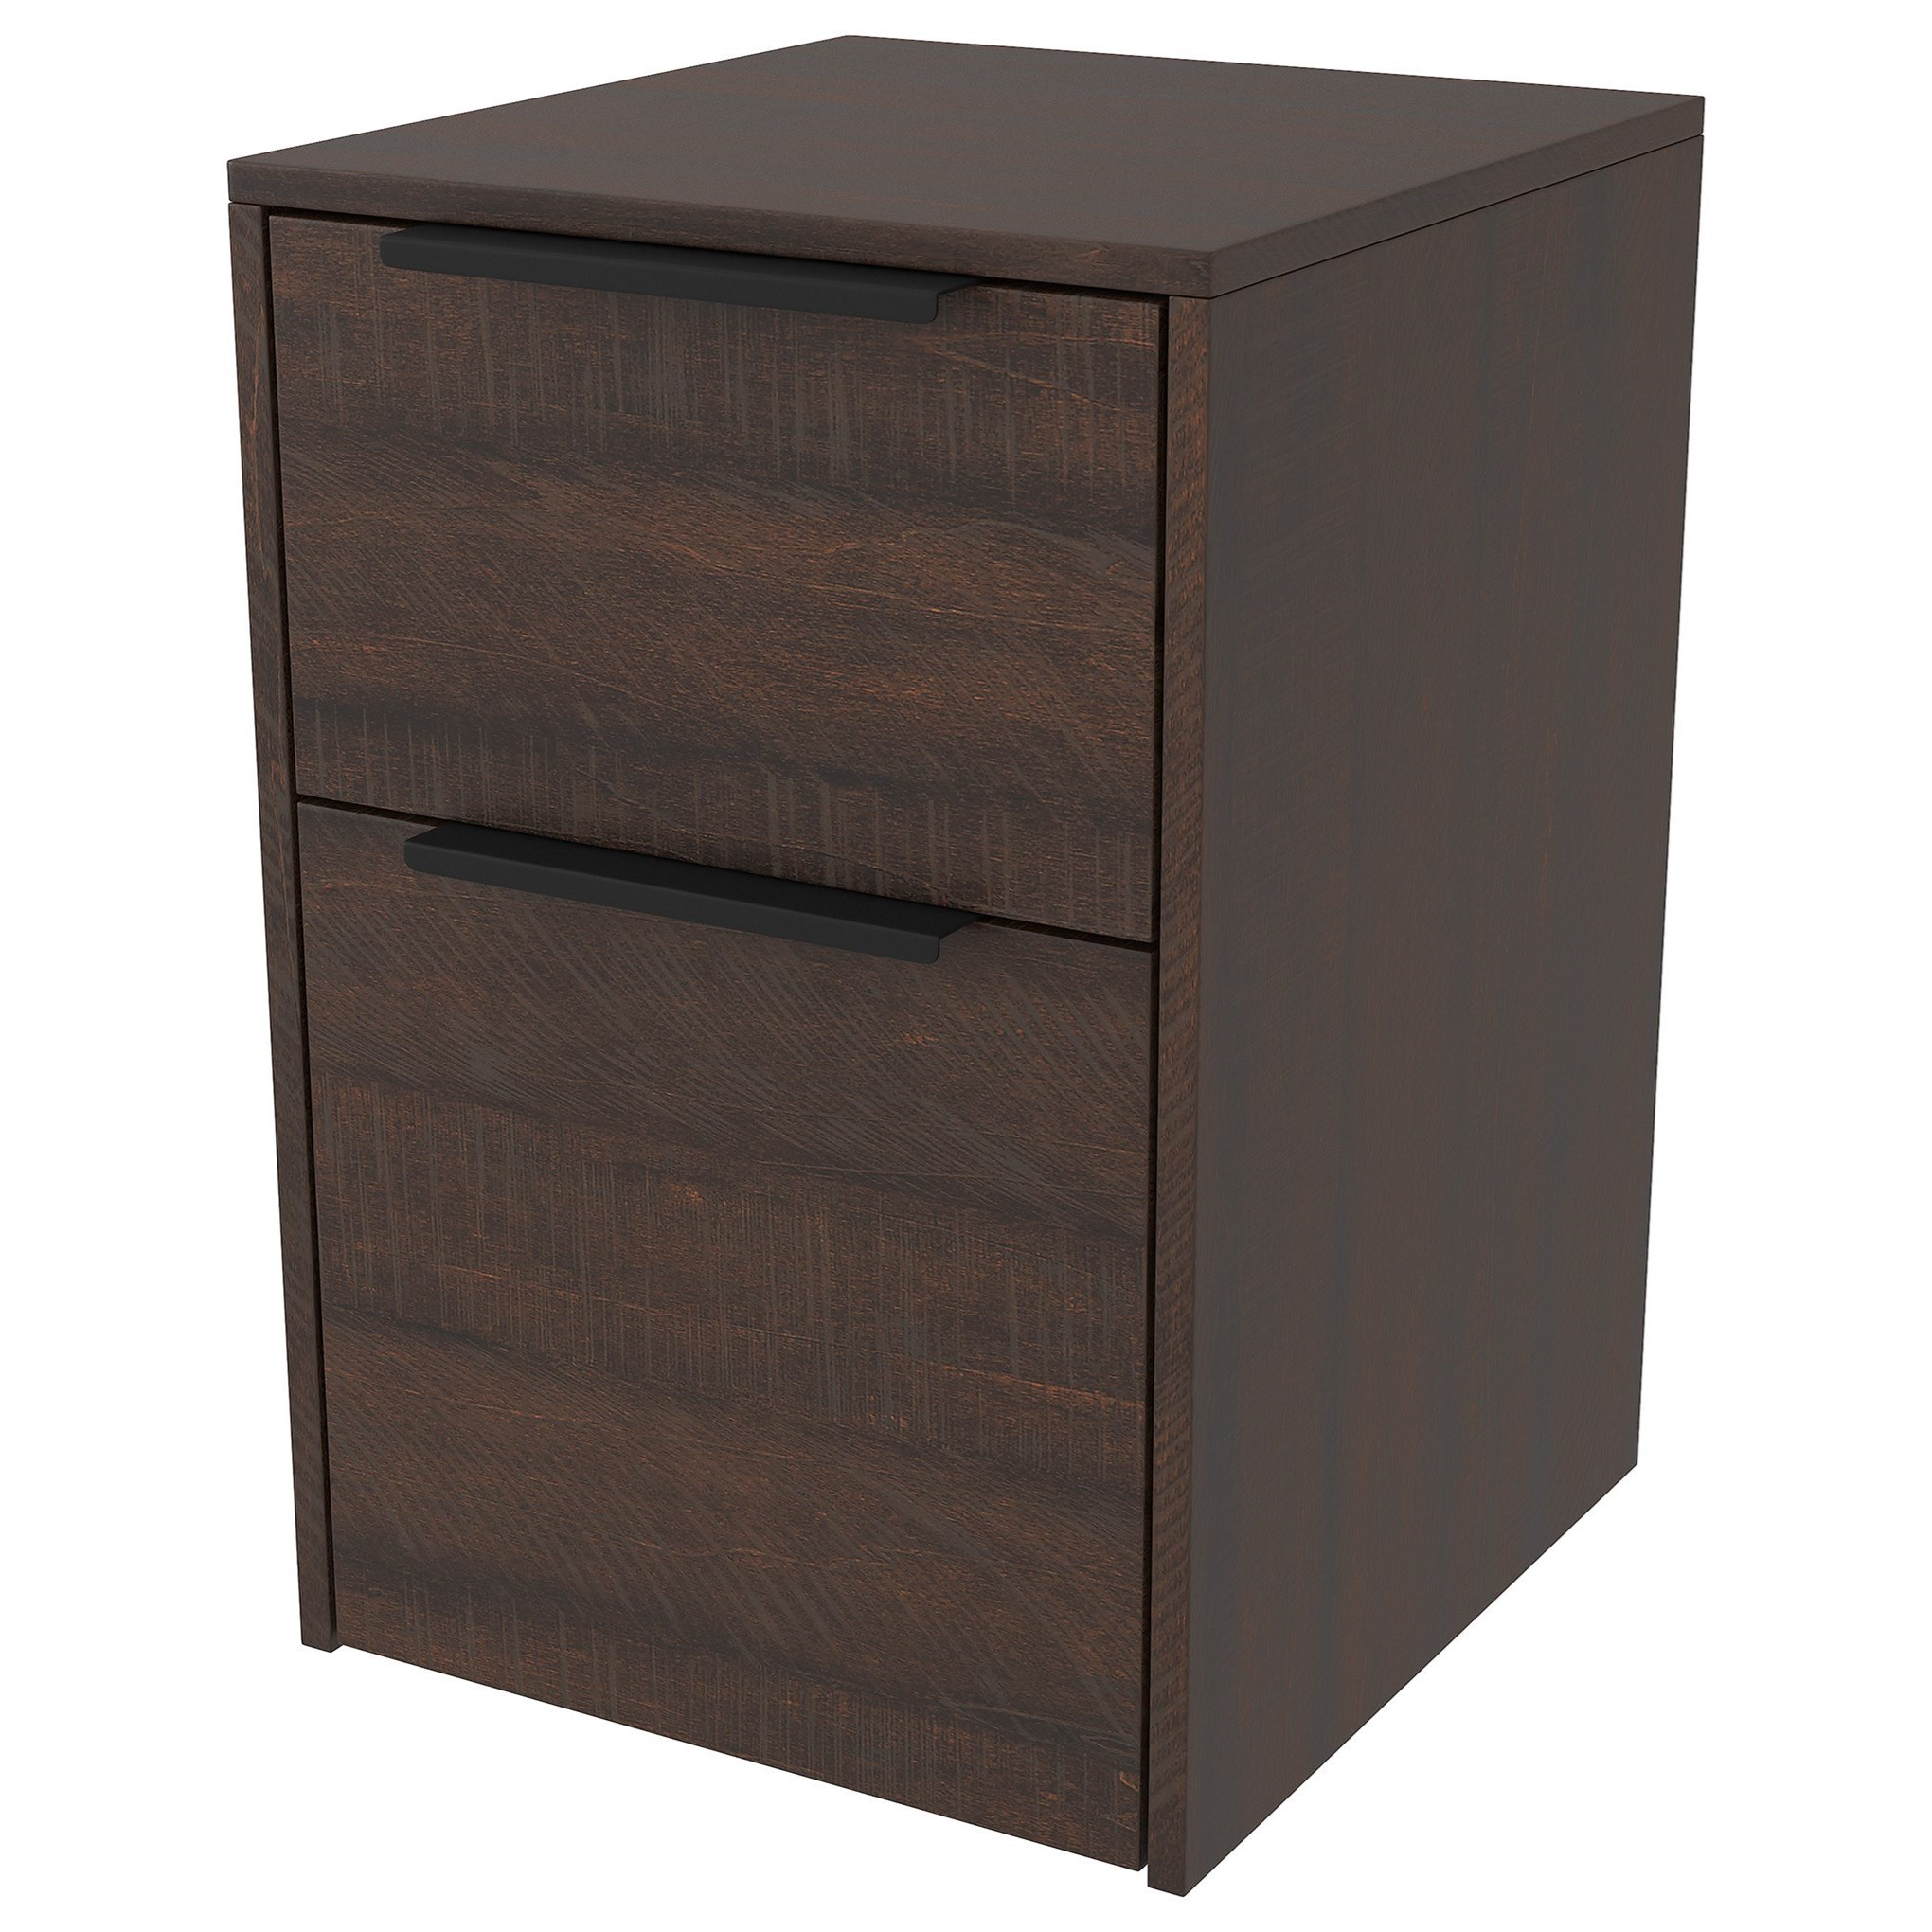 Camiburg File Cabinet by Signature Design by Ashley at Northeast Factory Direct